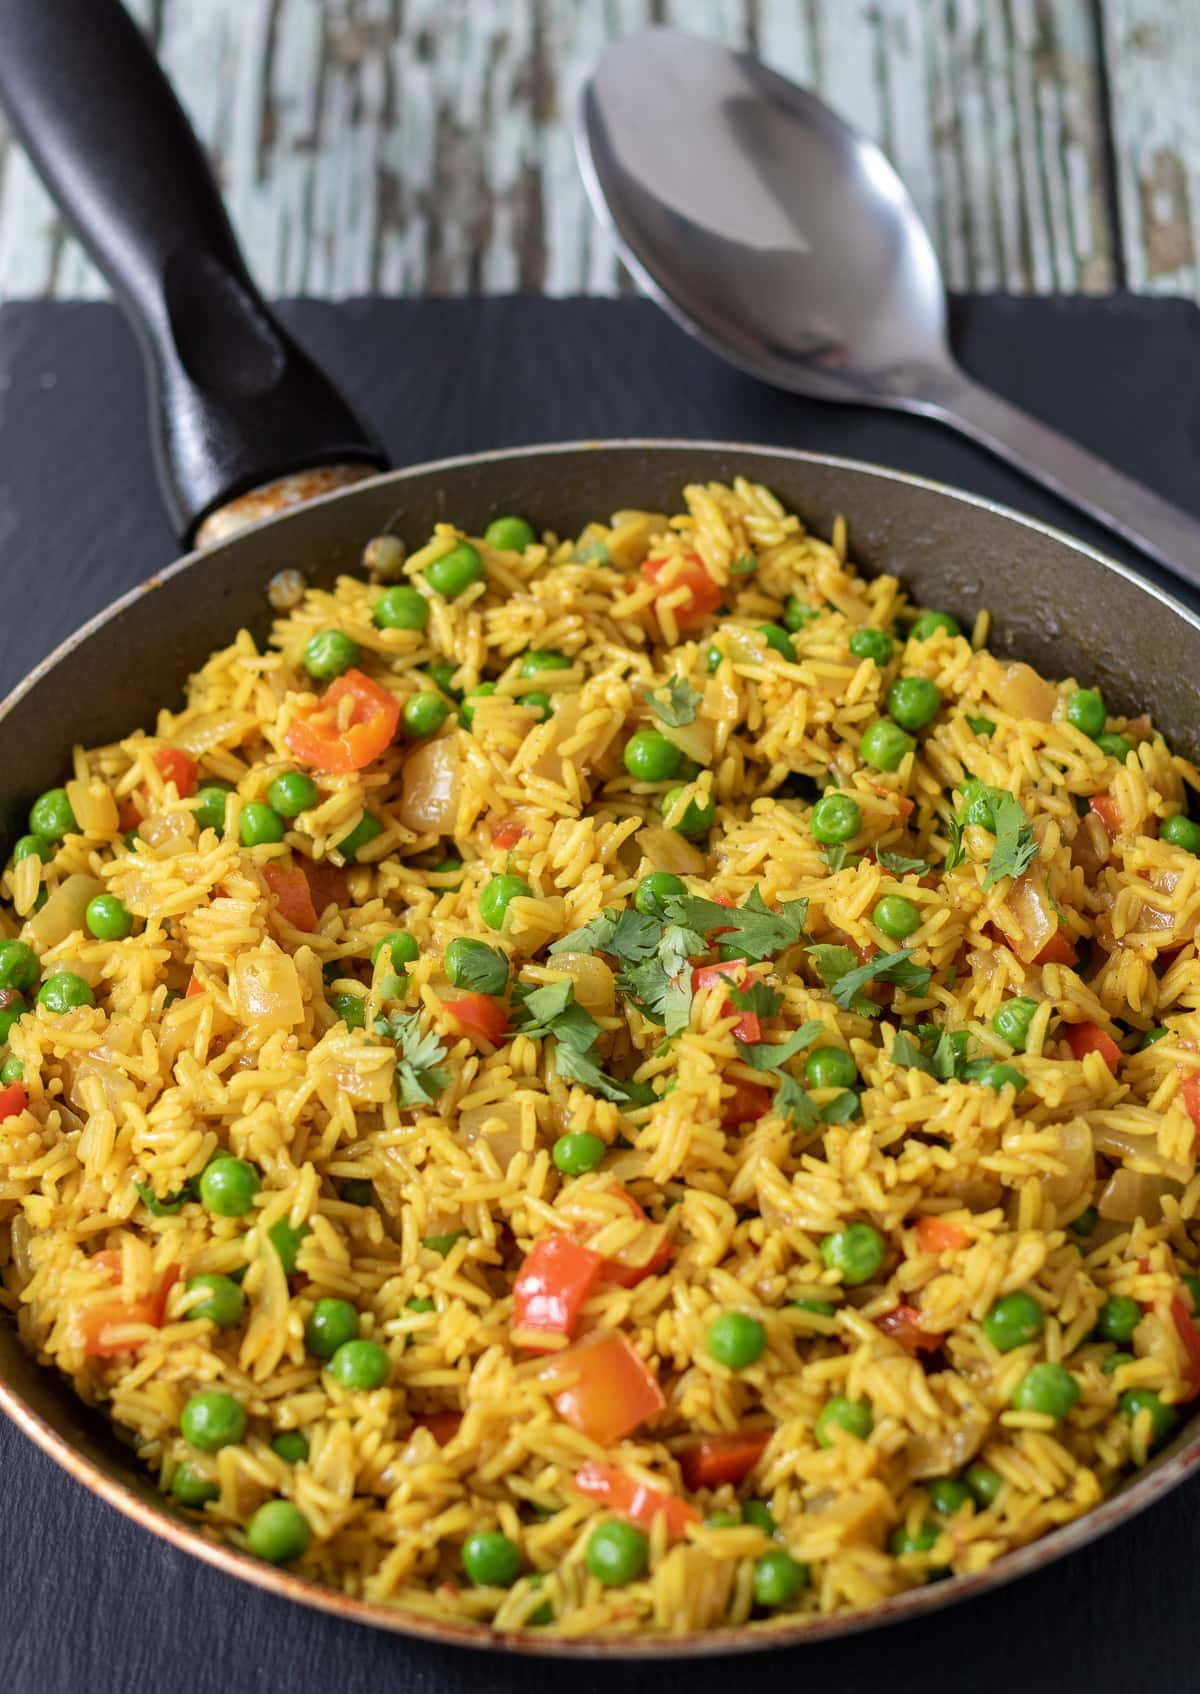 A pan of served spicy rice with peas.